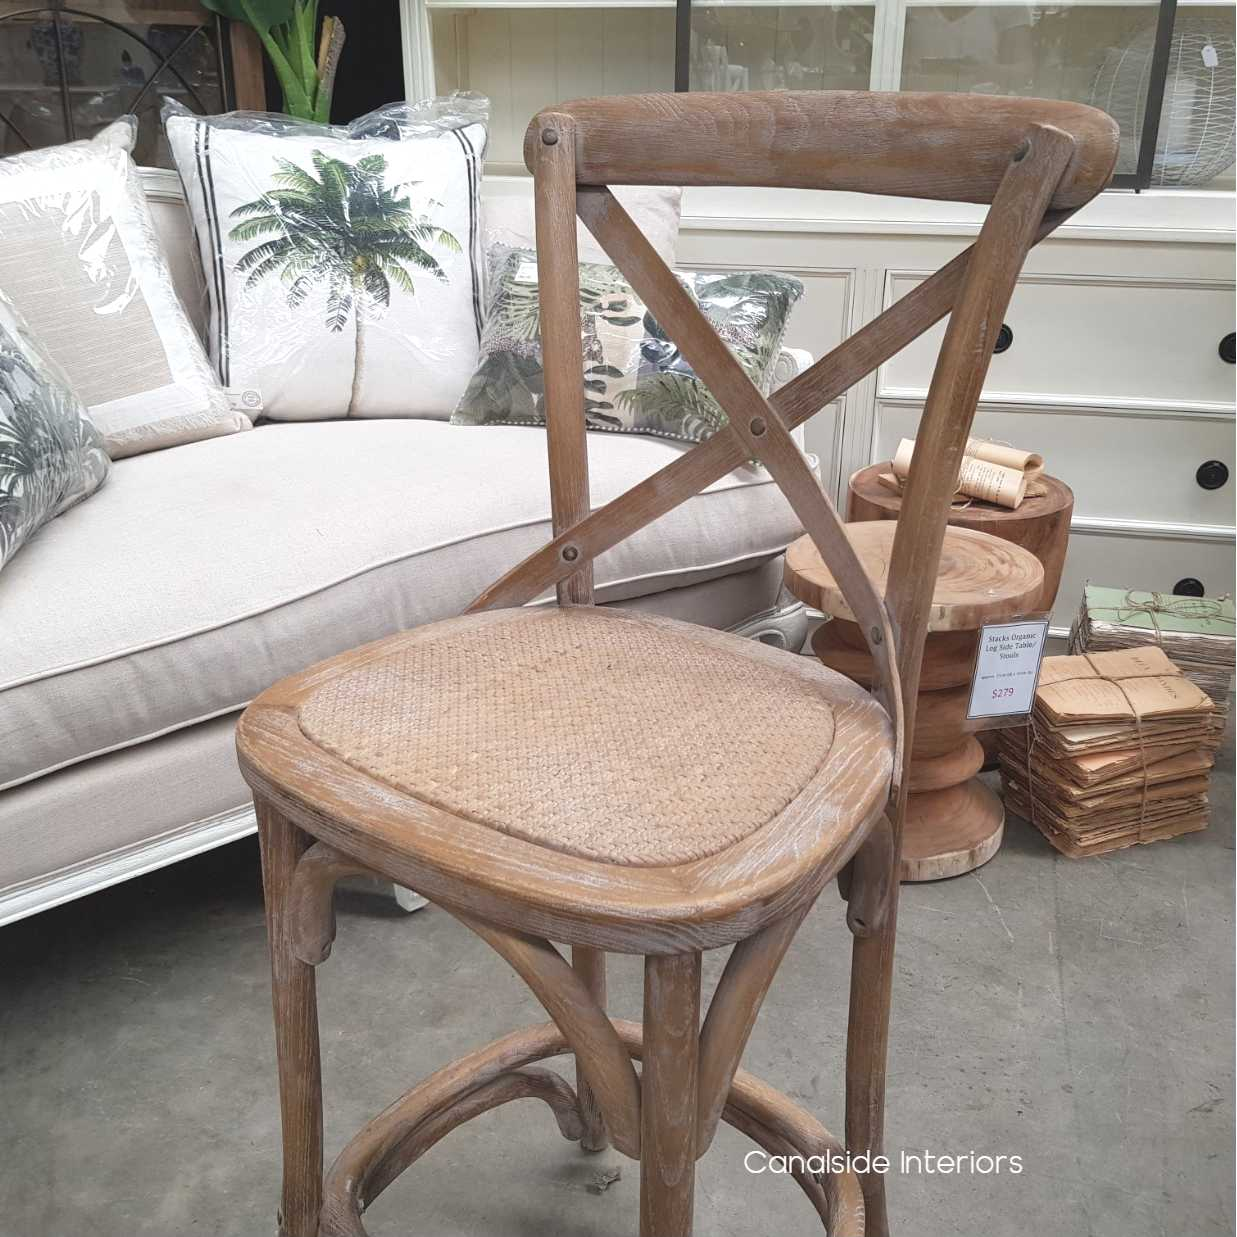 *Cross Back Kitchen Stool (65cm seat height) - Oatmeal - IN STOCK